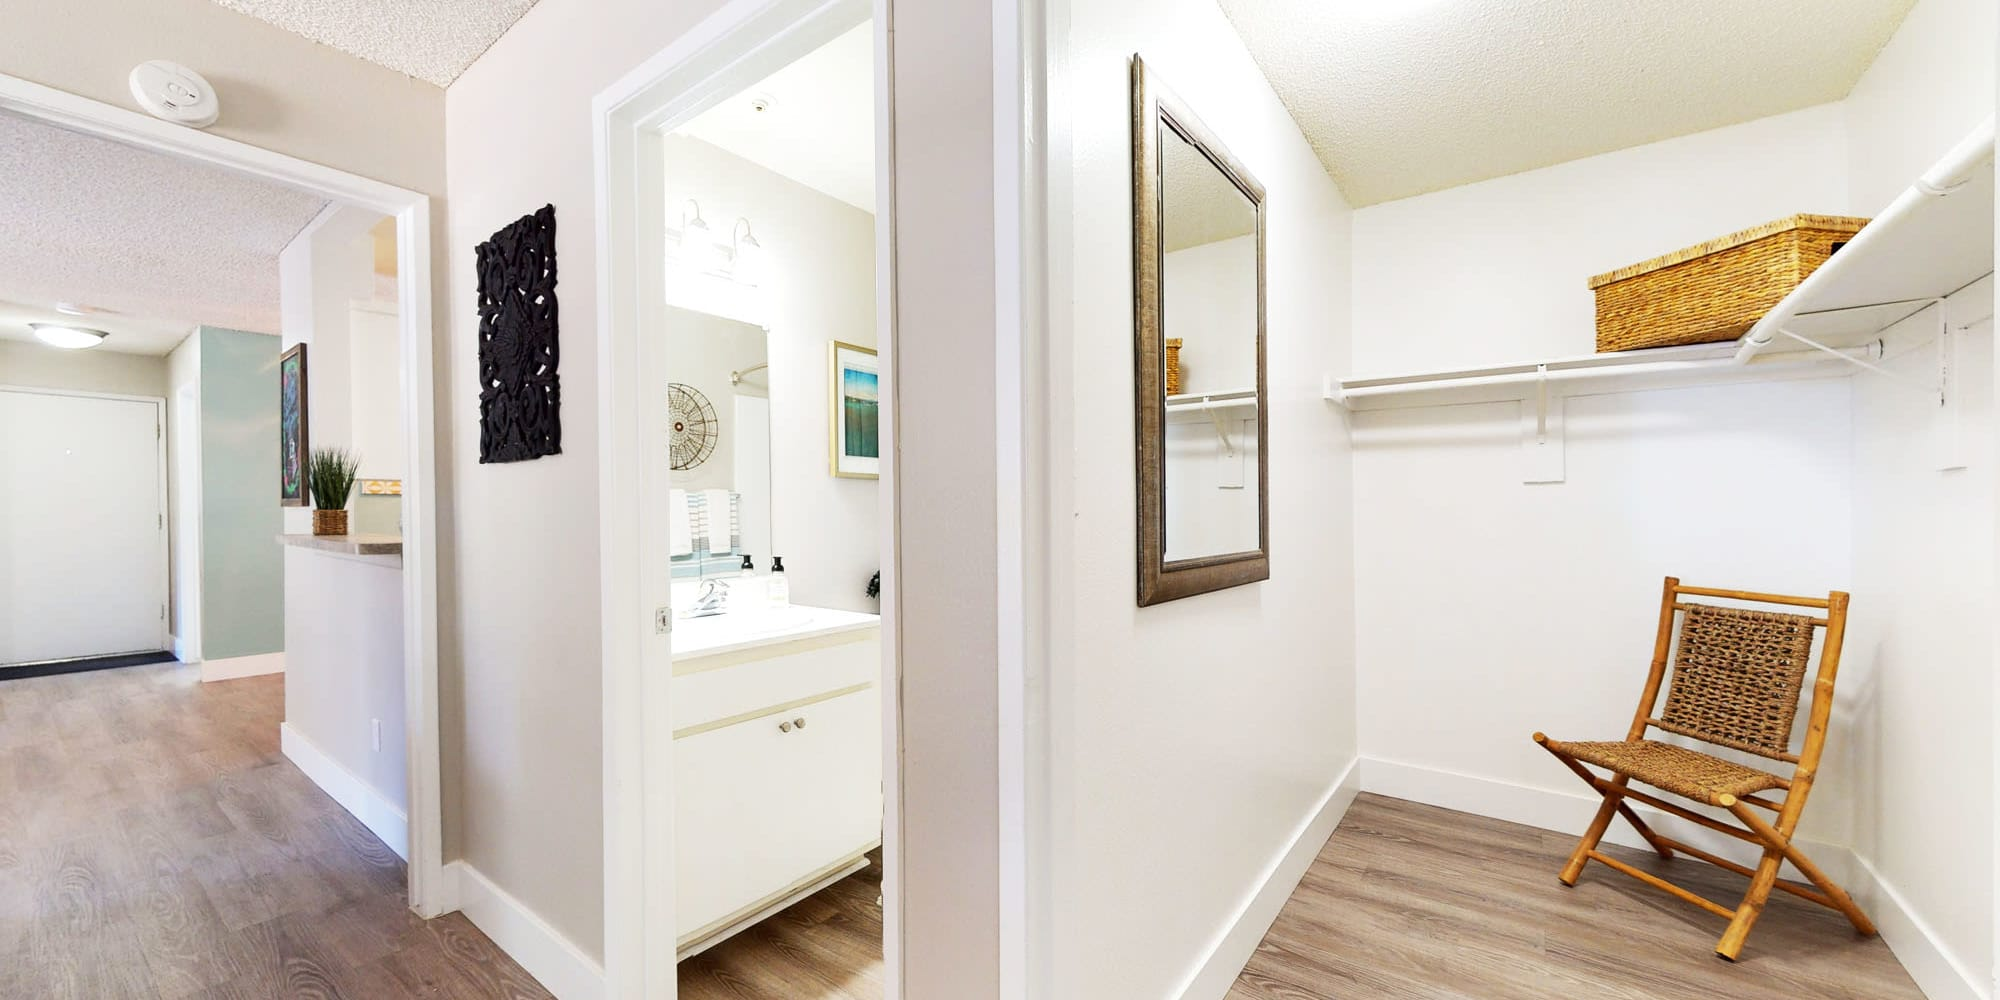 Model home's large walk-in closet next to the bathroom at Mountain Vista in Victorville, California